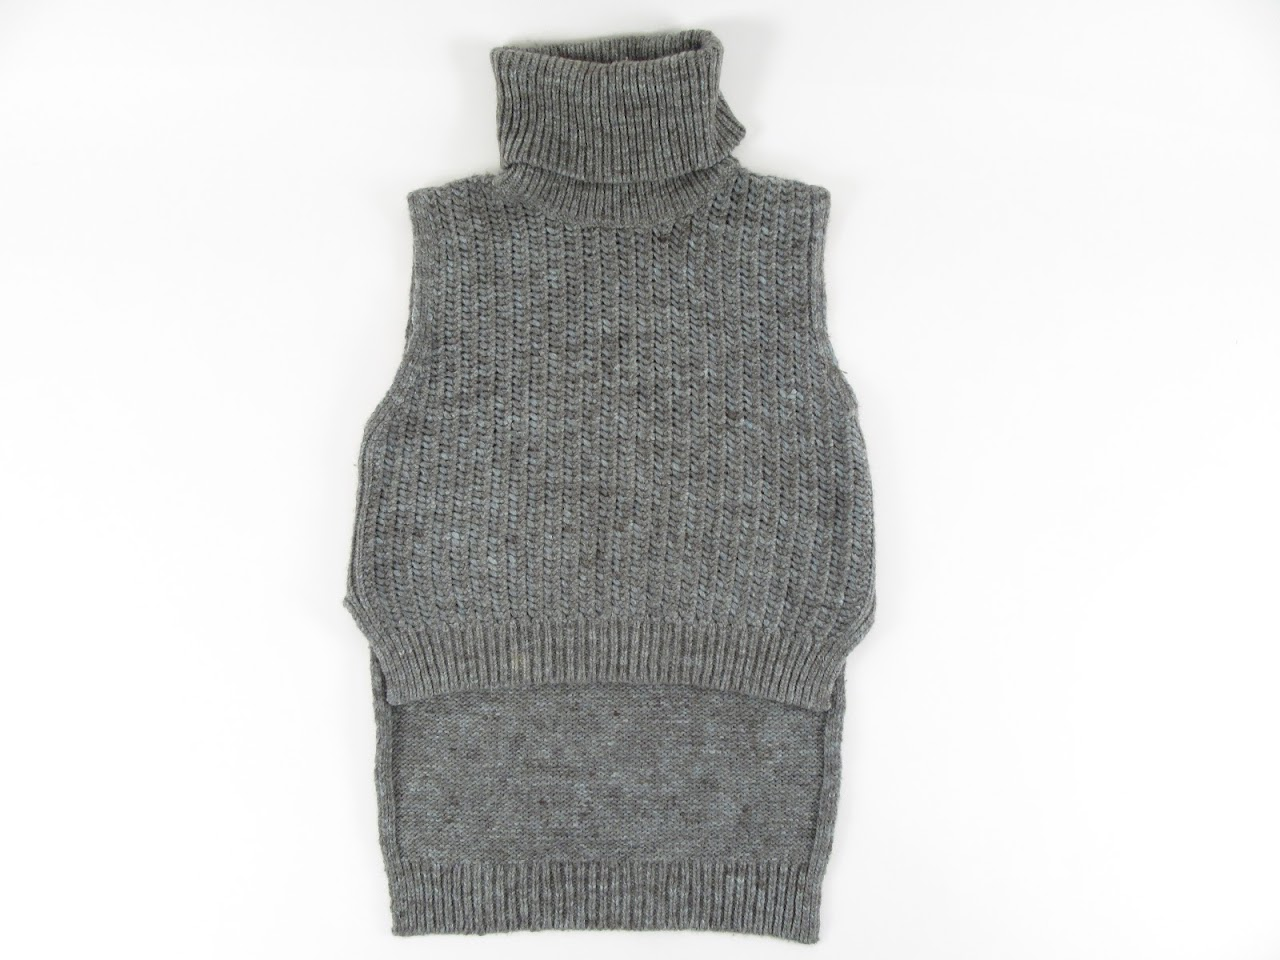 3.1 Phillip Lim Gray Sleeveless Vest Turtleneck